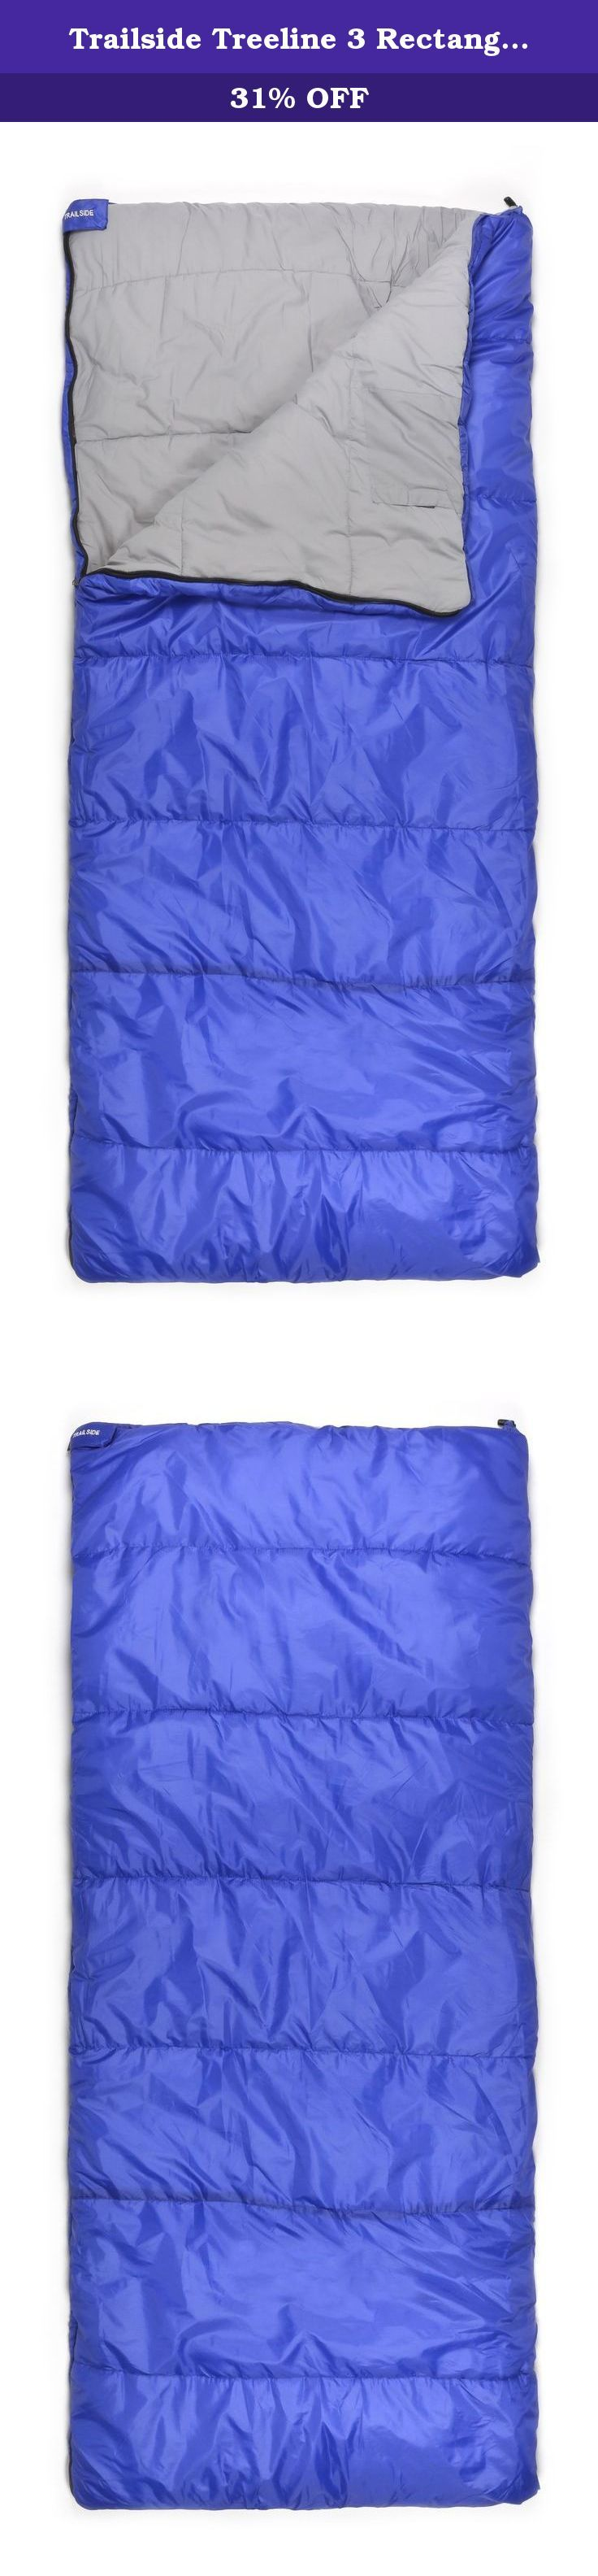 Trailside Treeline 3 Rectangular Synthetic 14-Degree Sleeping Bag, Blue. The Treeline 3 is a great all-purpose 3 season bag. It is filled with two layers of Insufil 1 hollow fiber insulation weighing 3 pound (1.36 kg), providing a temperature rating of 14DegreeF (-10DegreeC). The outer shell is polyester taffeta and the lining is poly/cotton fabric. The insulated draft tube prevents heat loss through the #5 2-way zipper and unzips fully for use as a blanket. It measures 80-Inch x 34-Inch...